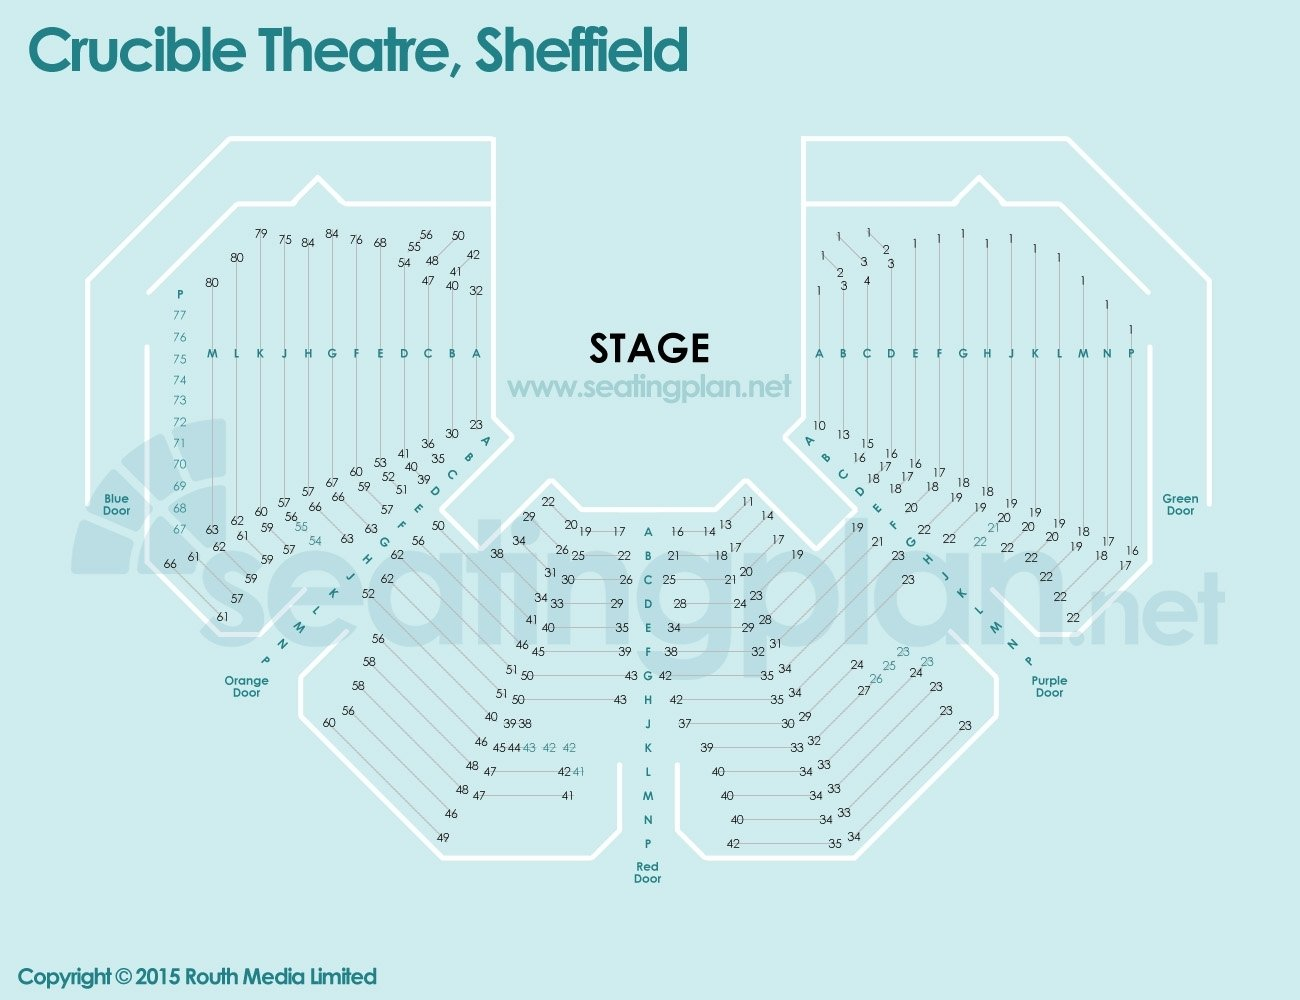 detailed Seating Plan at Crucible Theatre